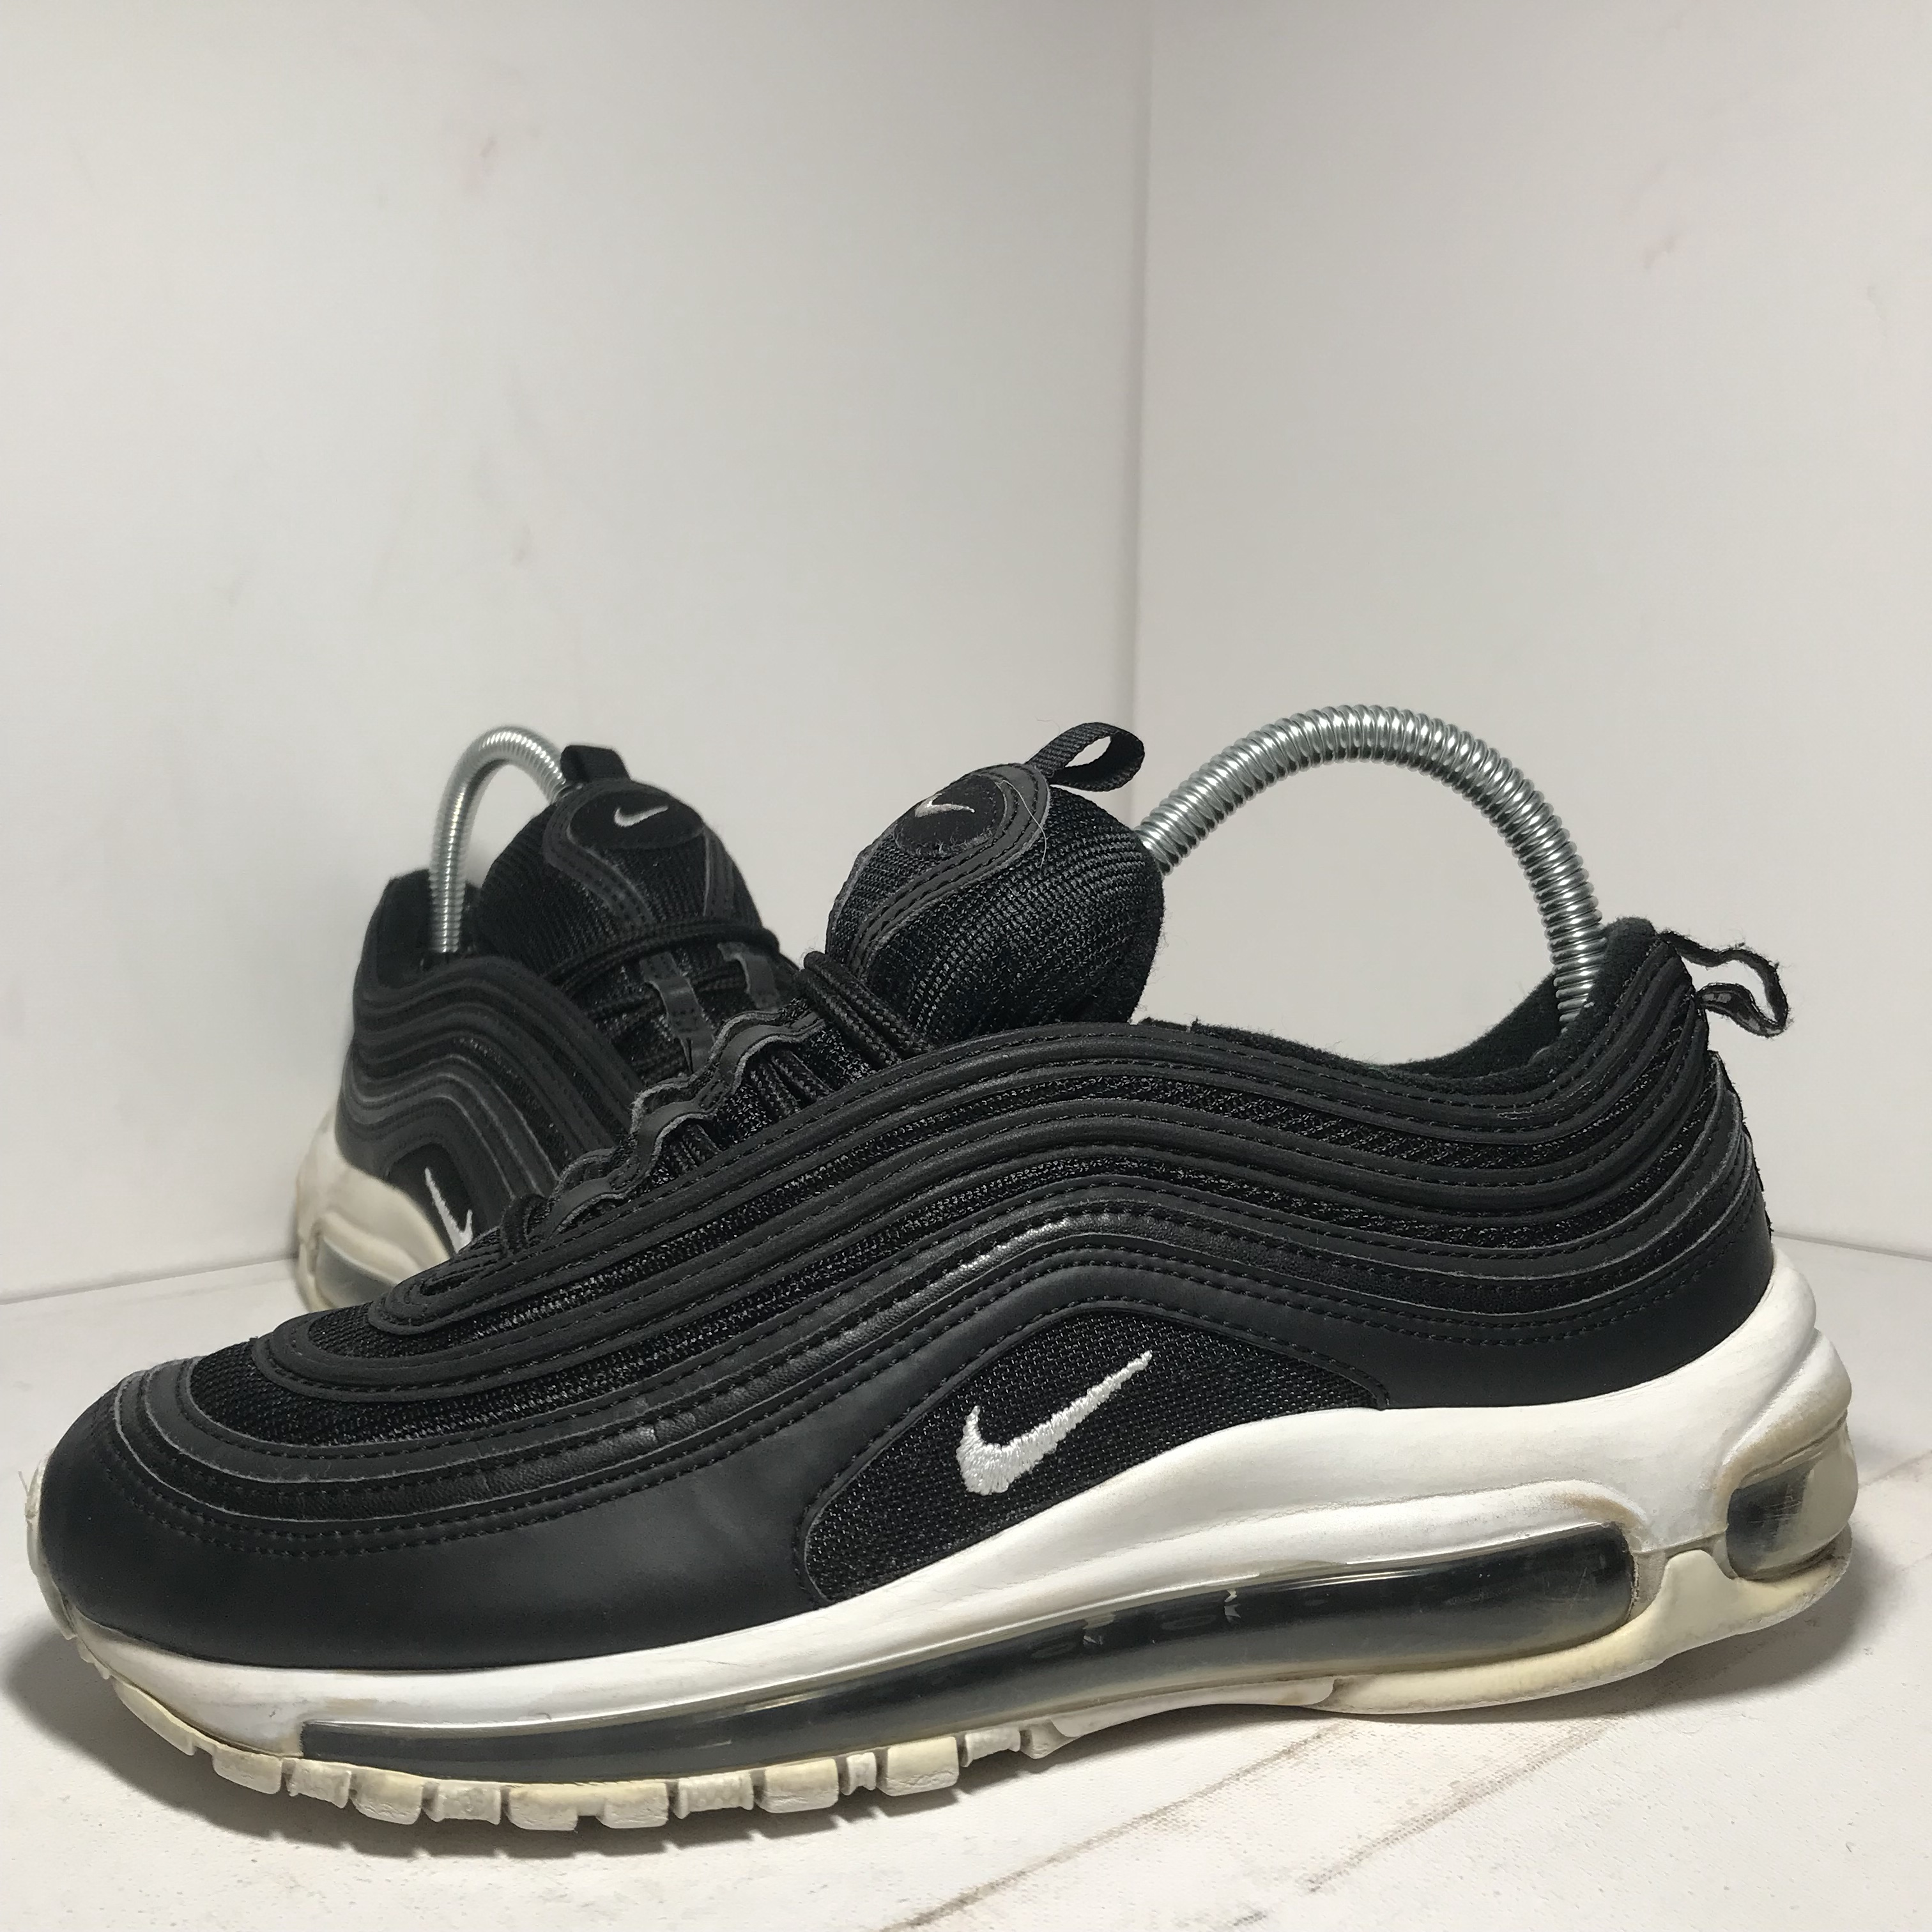 detailed look 3e24b 4763f Nike Air Max 97s Black and white Size UK5.5... - Depop